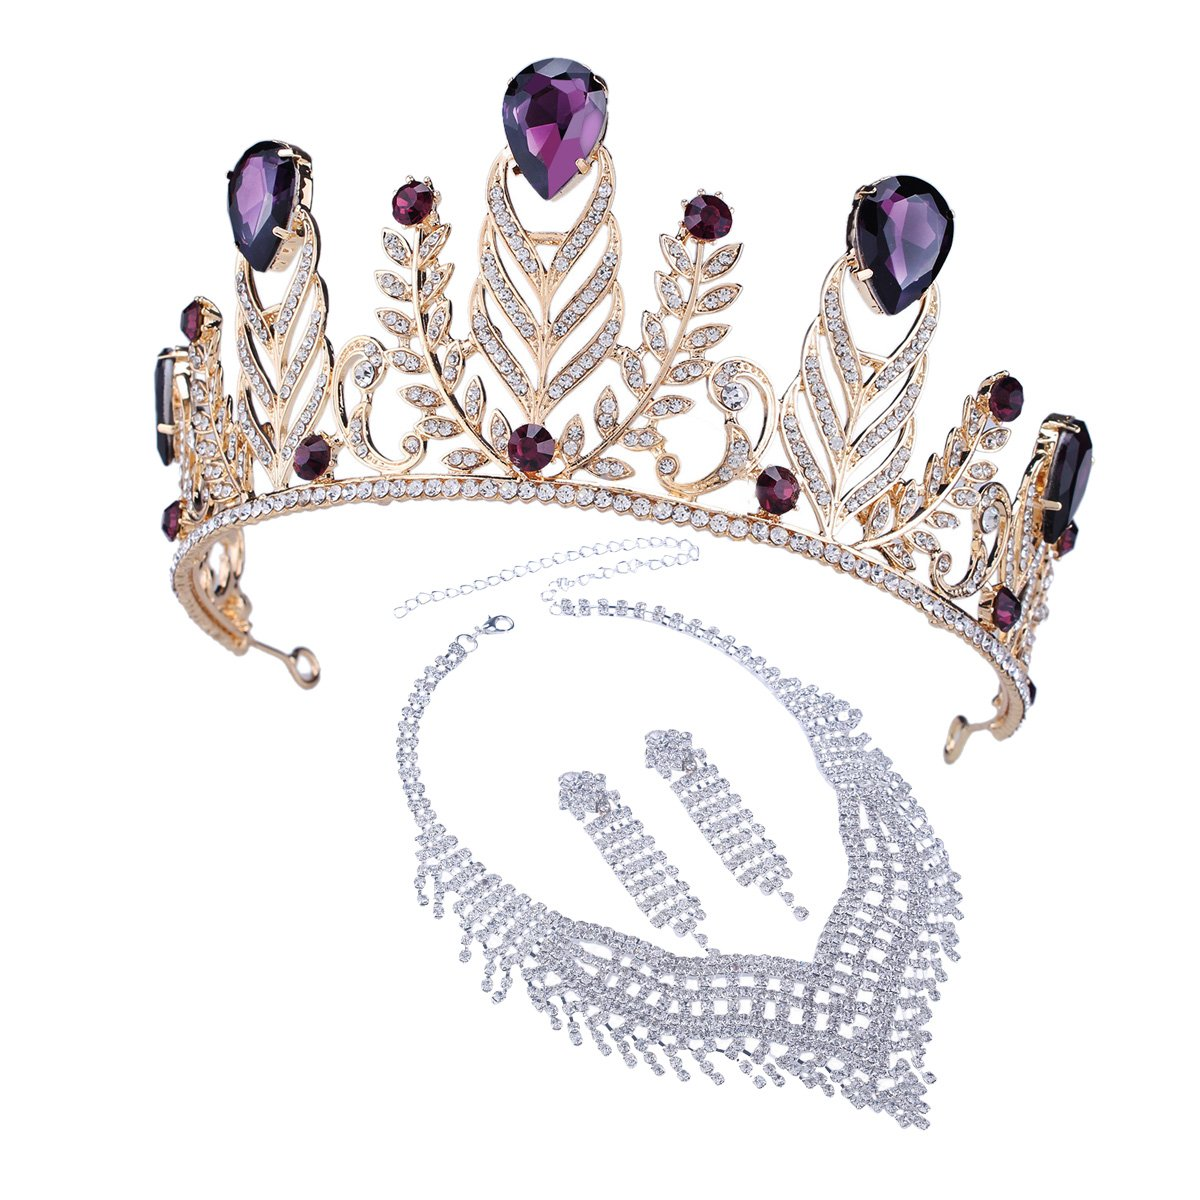 Santfe Elgant Purple Crystal Stone Leaf Style Wedding Party Headband Hair Band Tiara Crown, Come with Earrings or Necklace (Style 8)